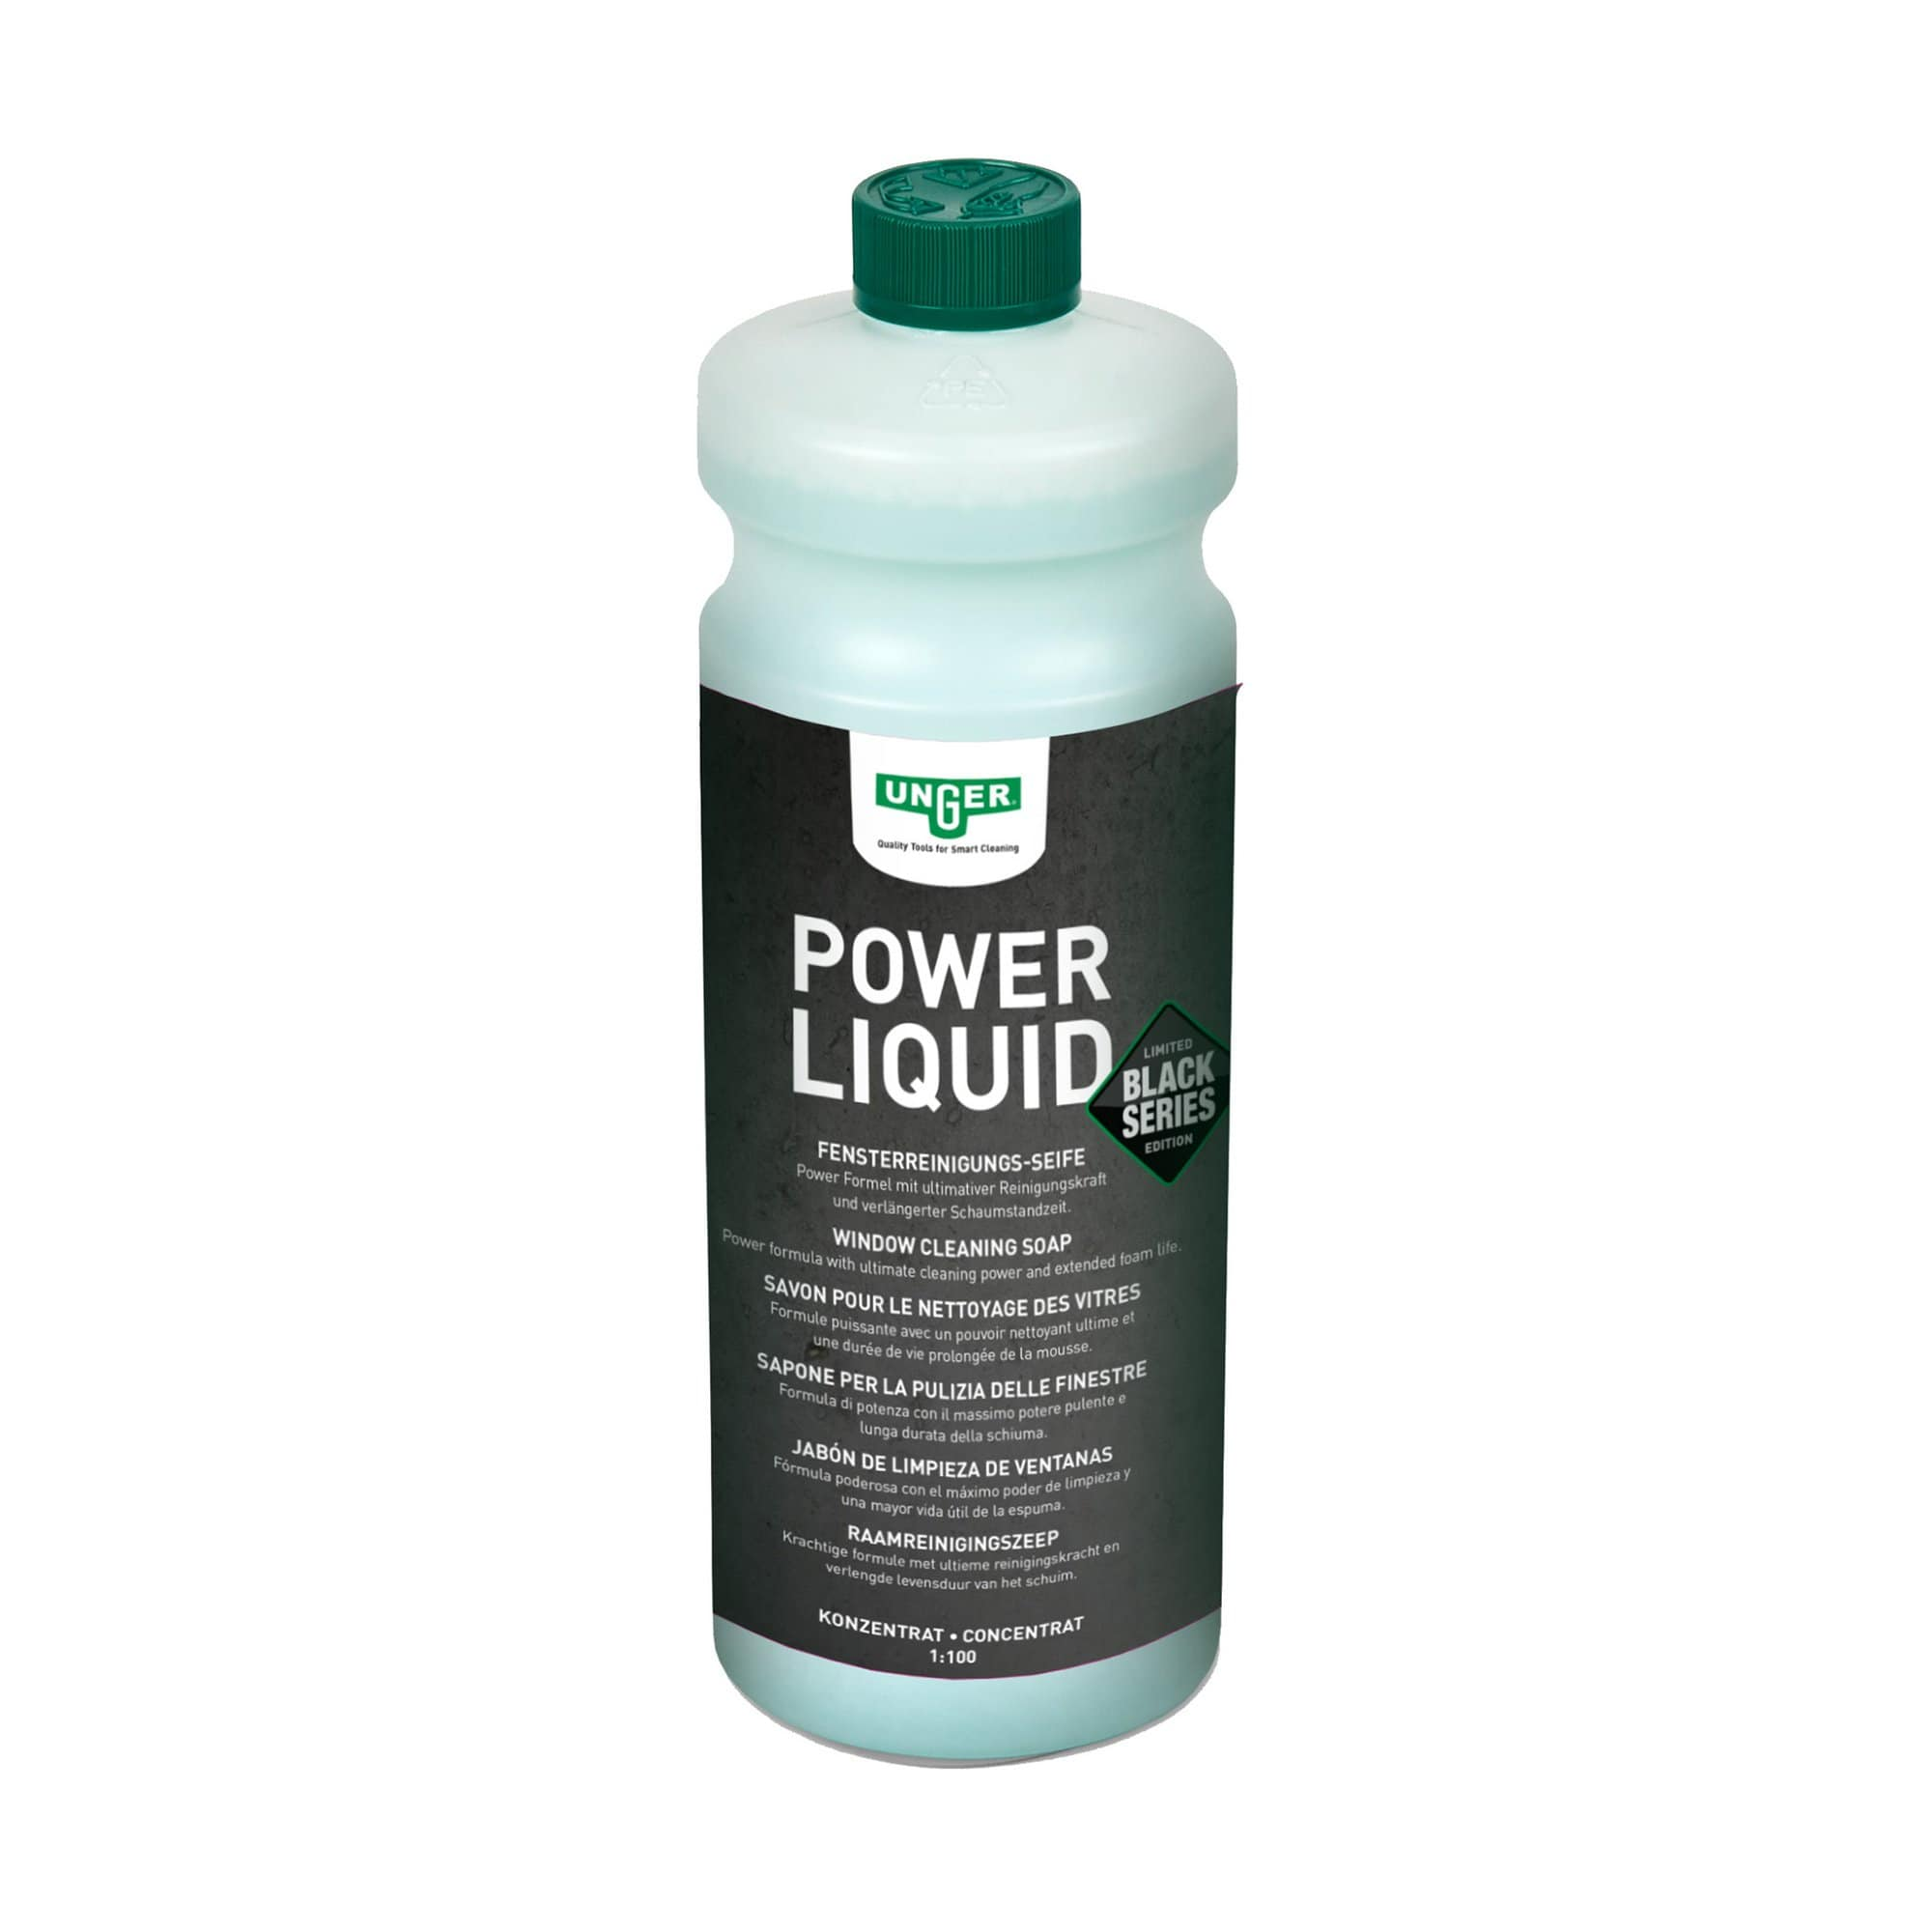 Unger Black Series Power Liquid 1L - Limited Edition